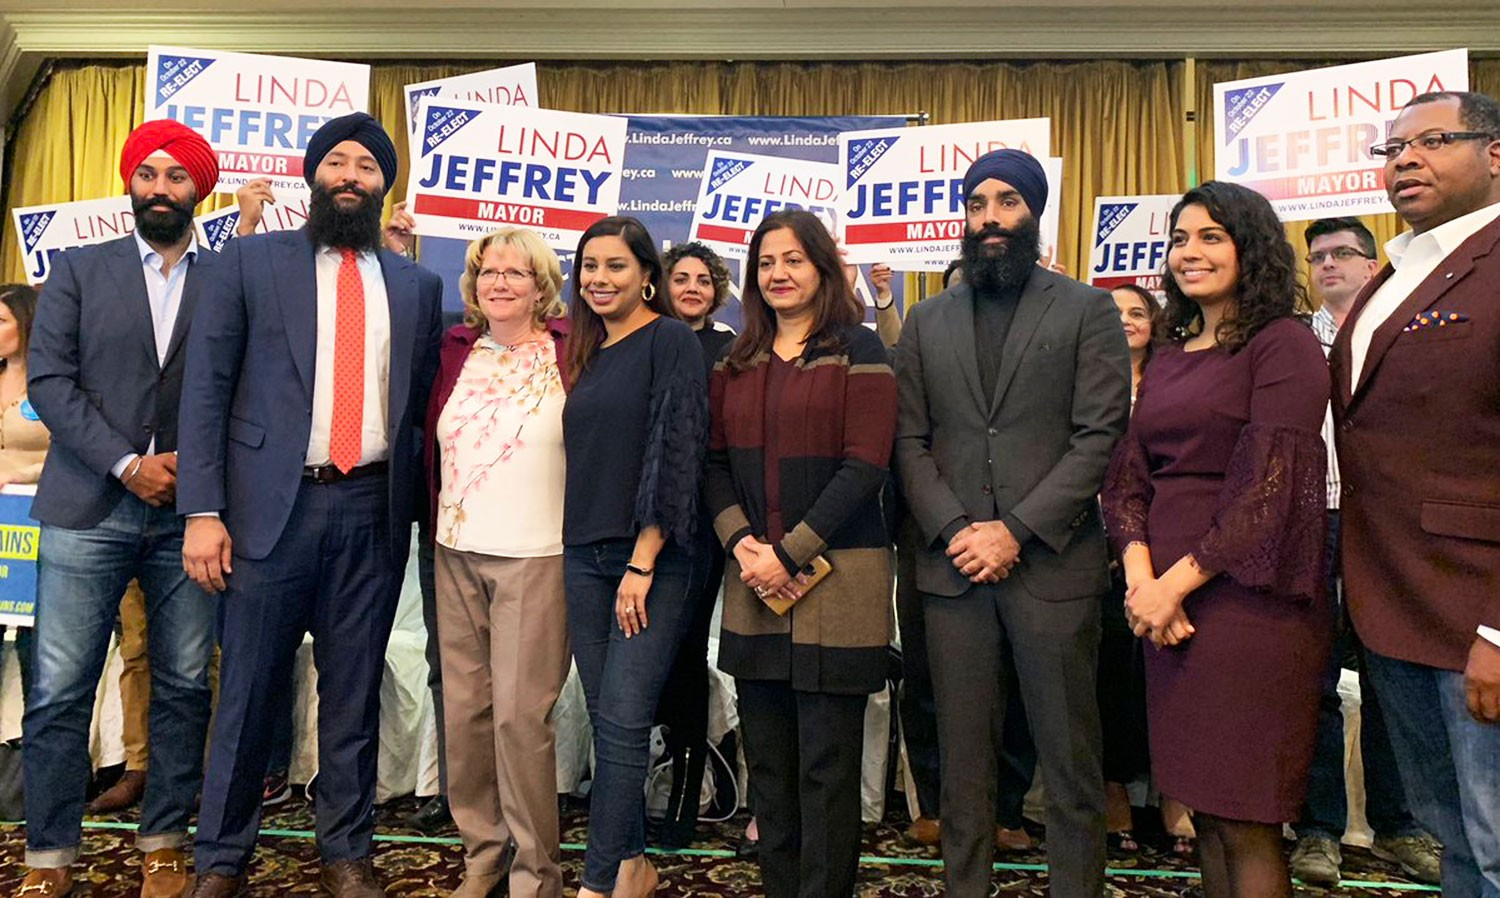 Jeffrey's latest win in the endorsement battle comes in red, blue and orange